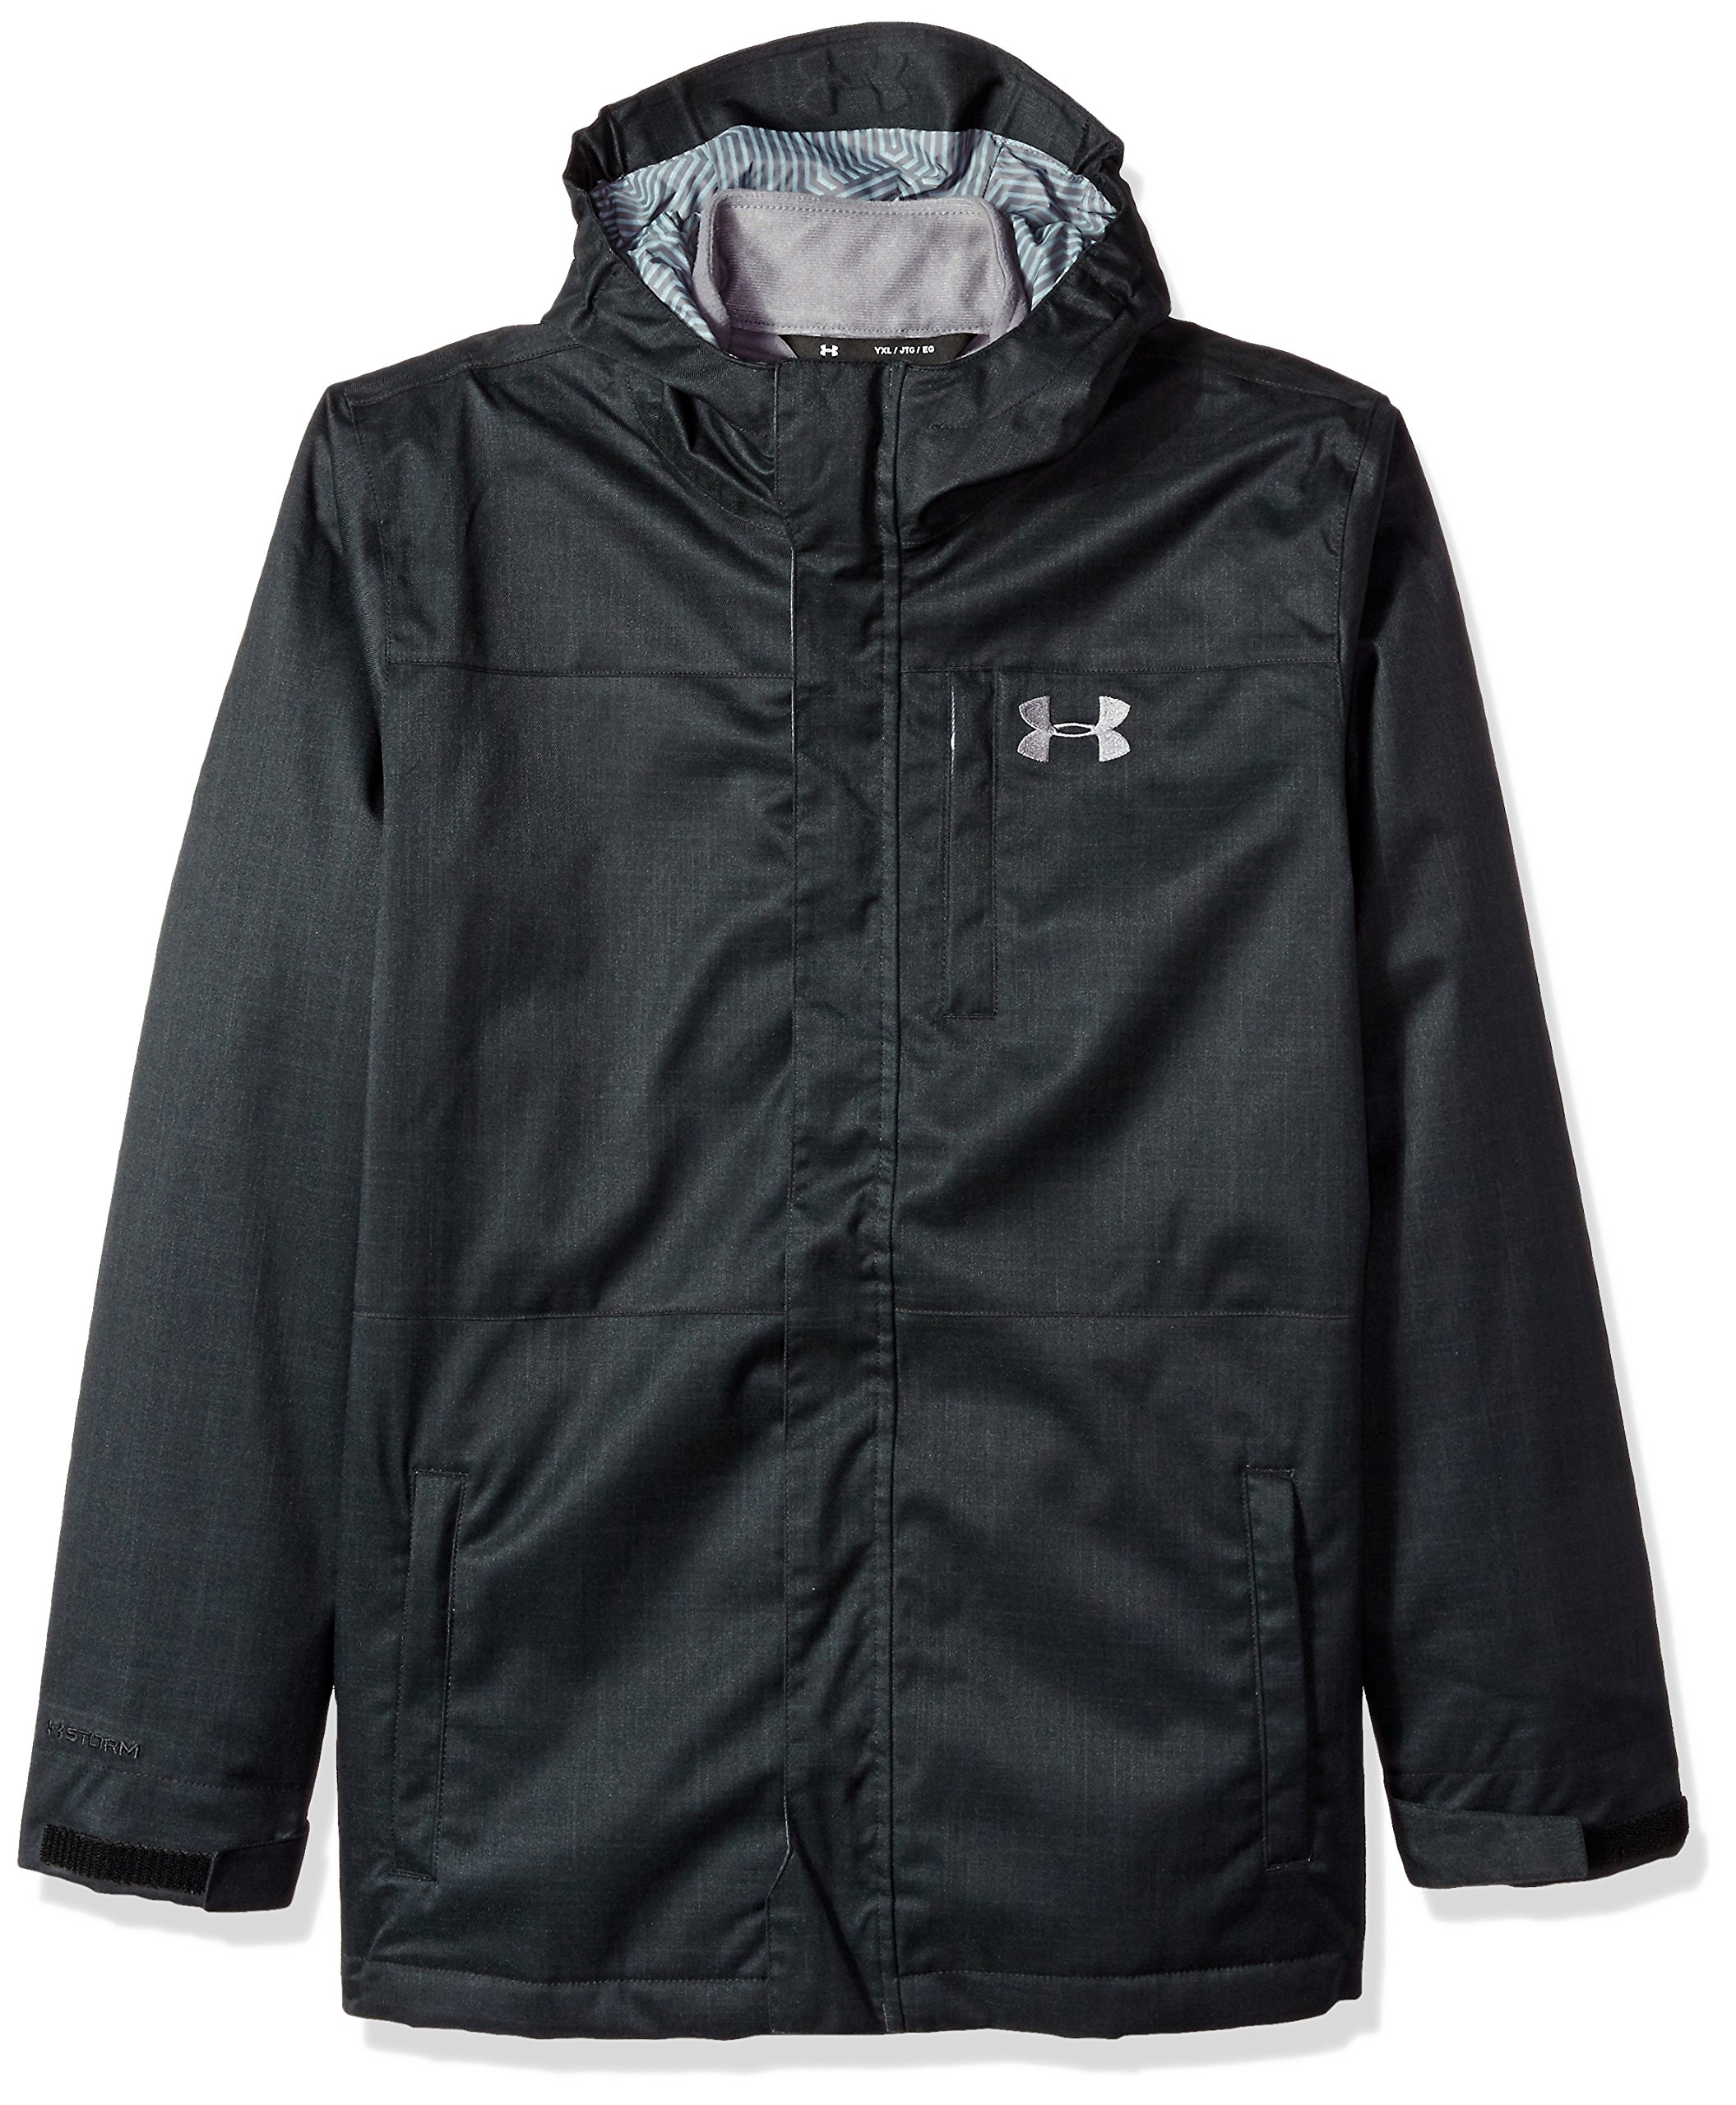 Under Armour Boys' Storm Wildwood 3-in-1 Jacket, Black/Graphite, Youth X-Large by Under Armour